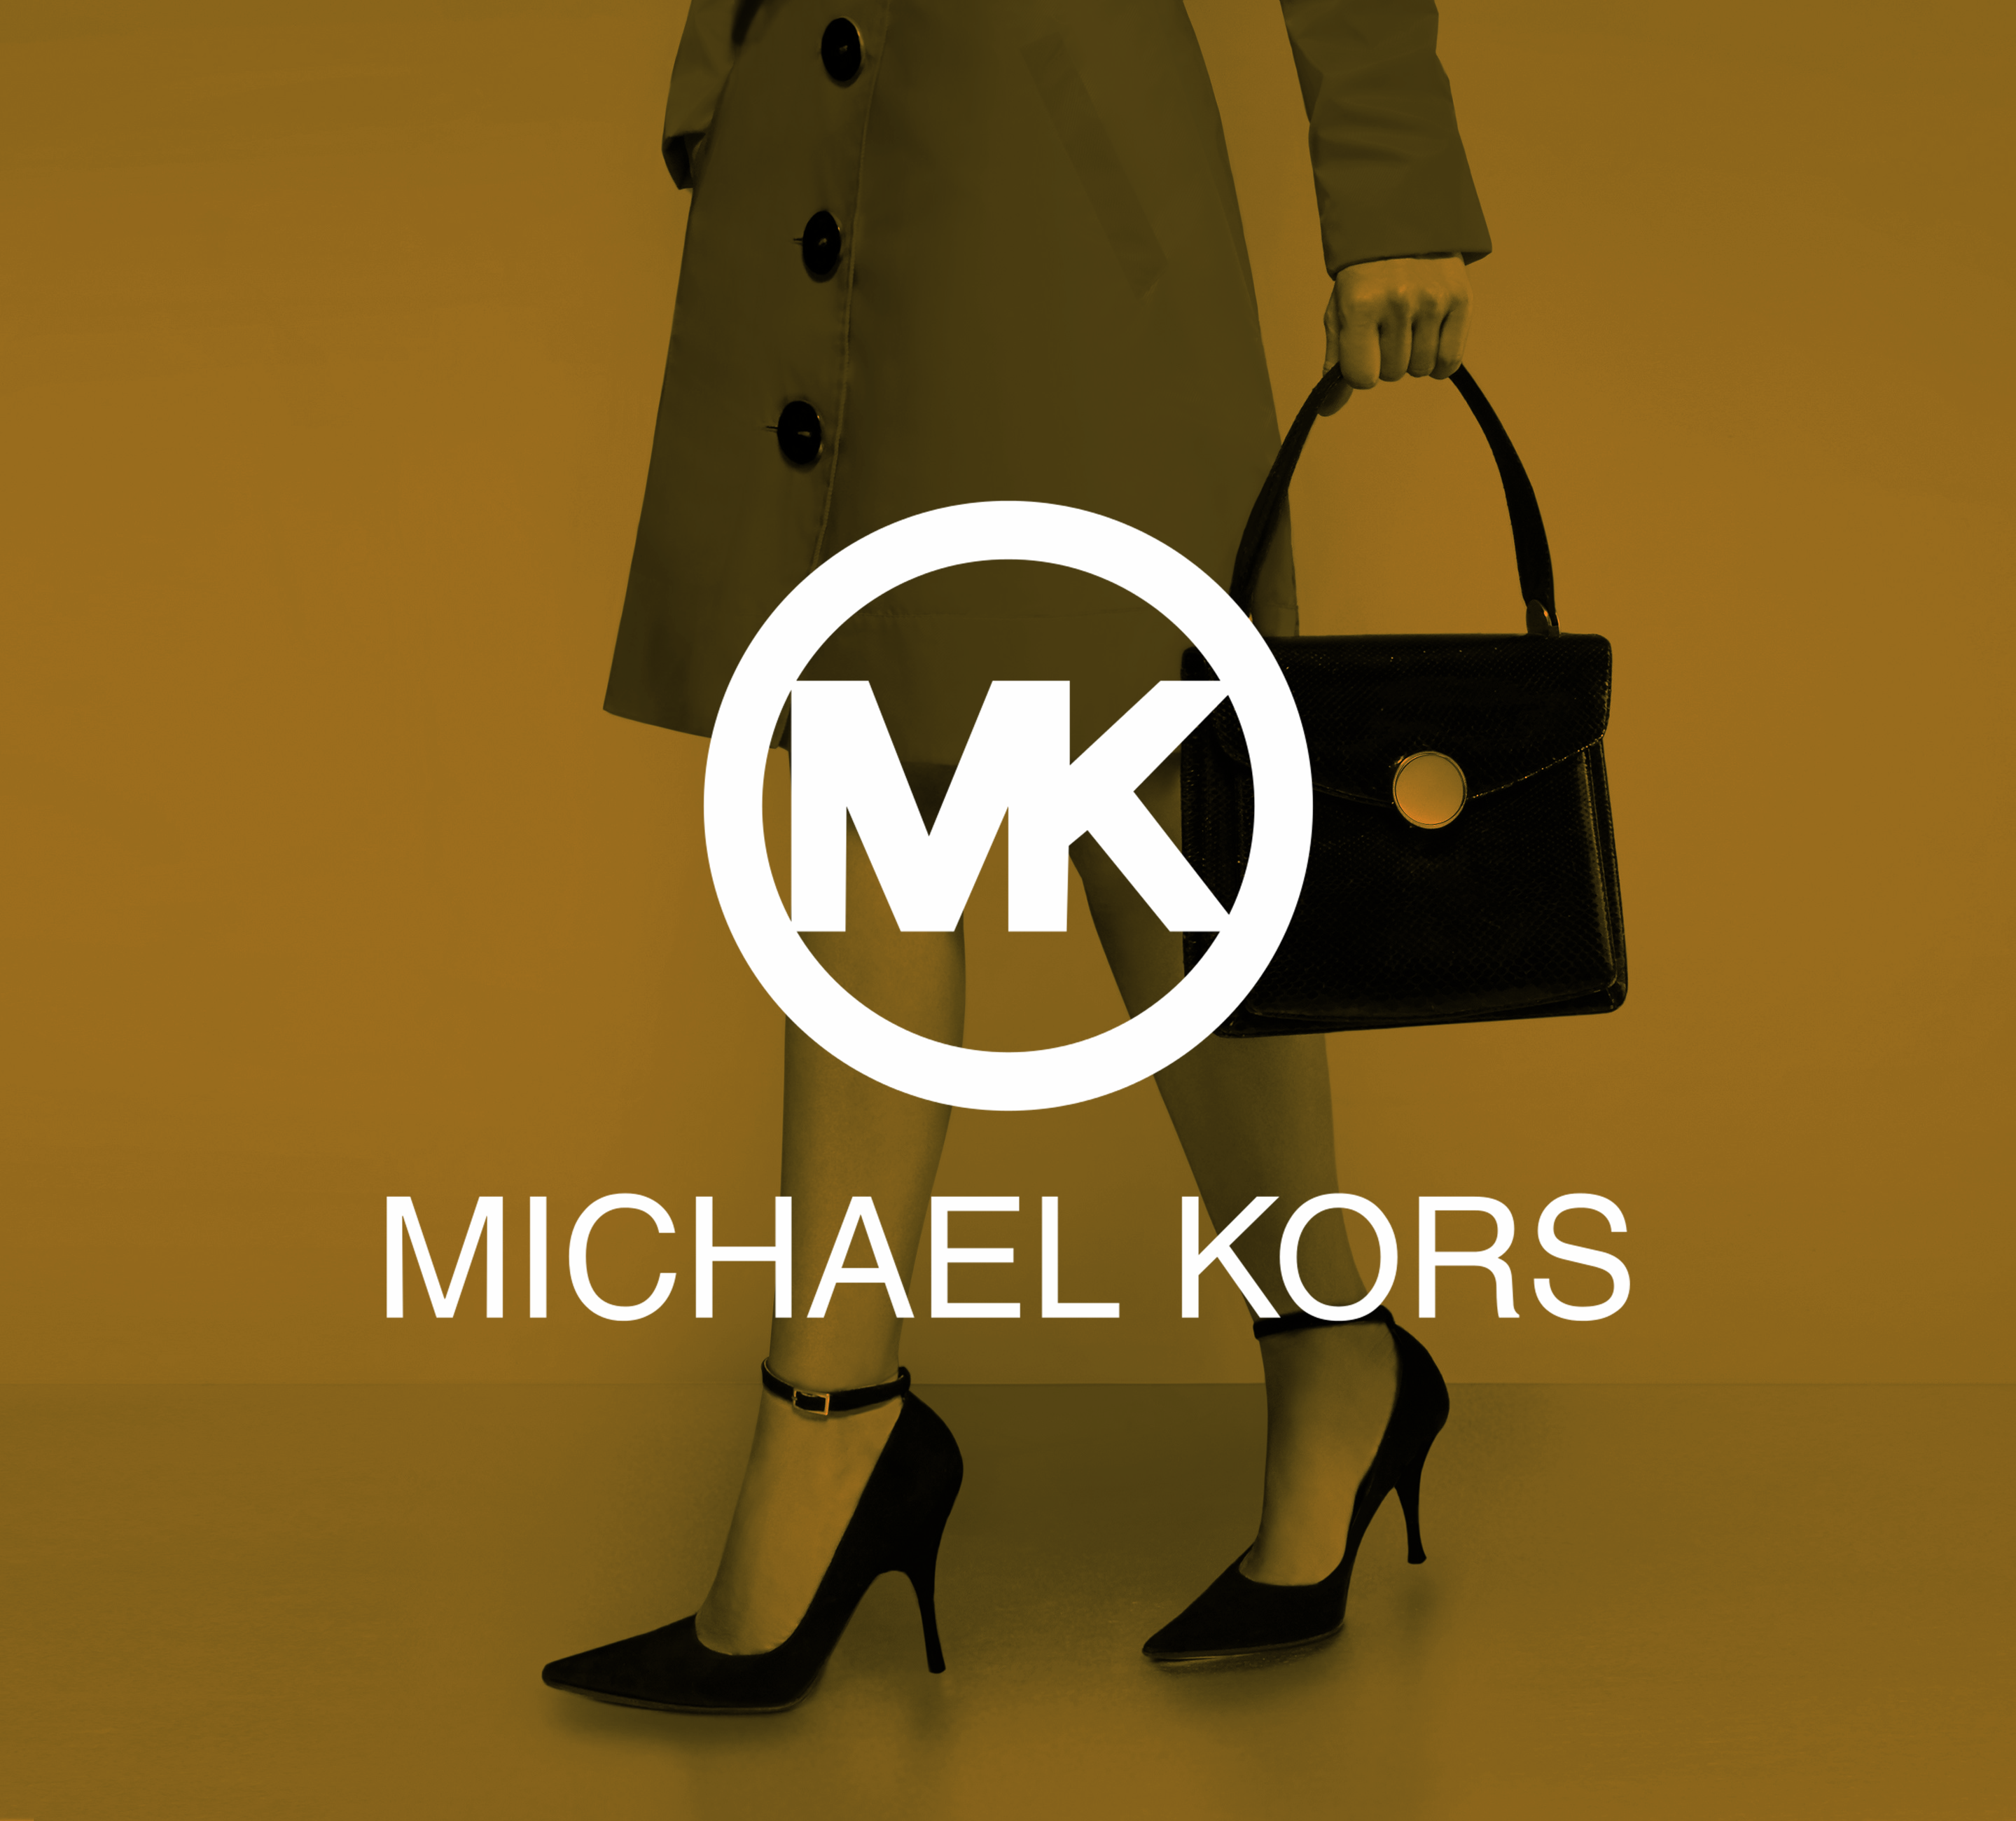 Michael_Kors_Photoshop_HQ.png